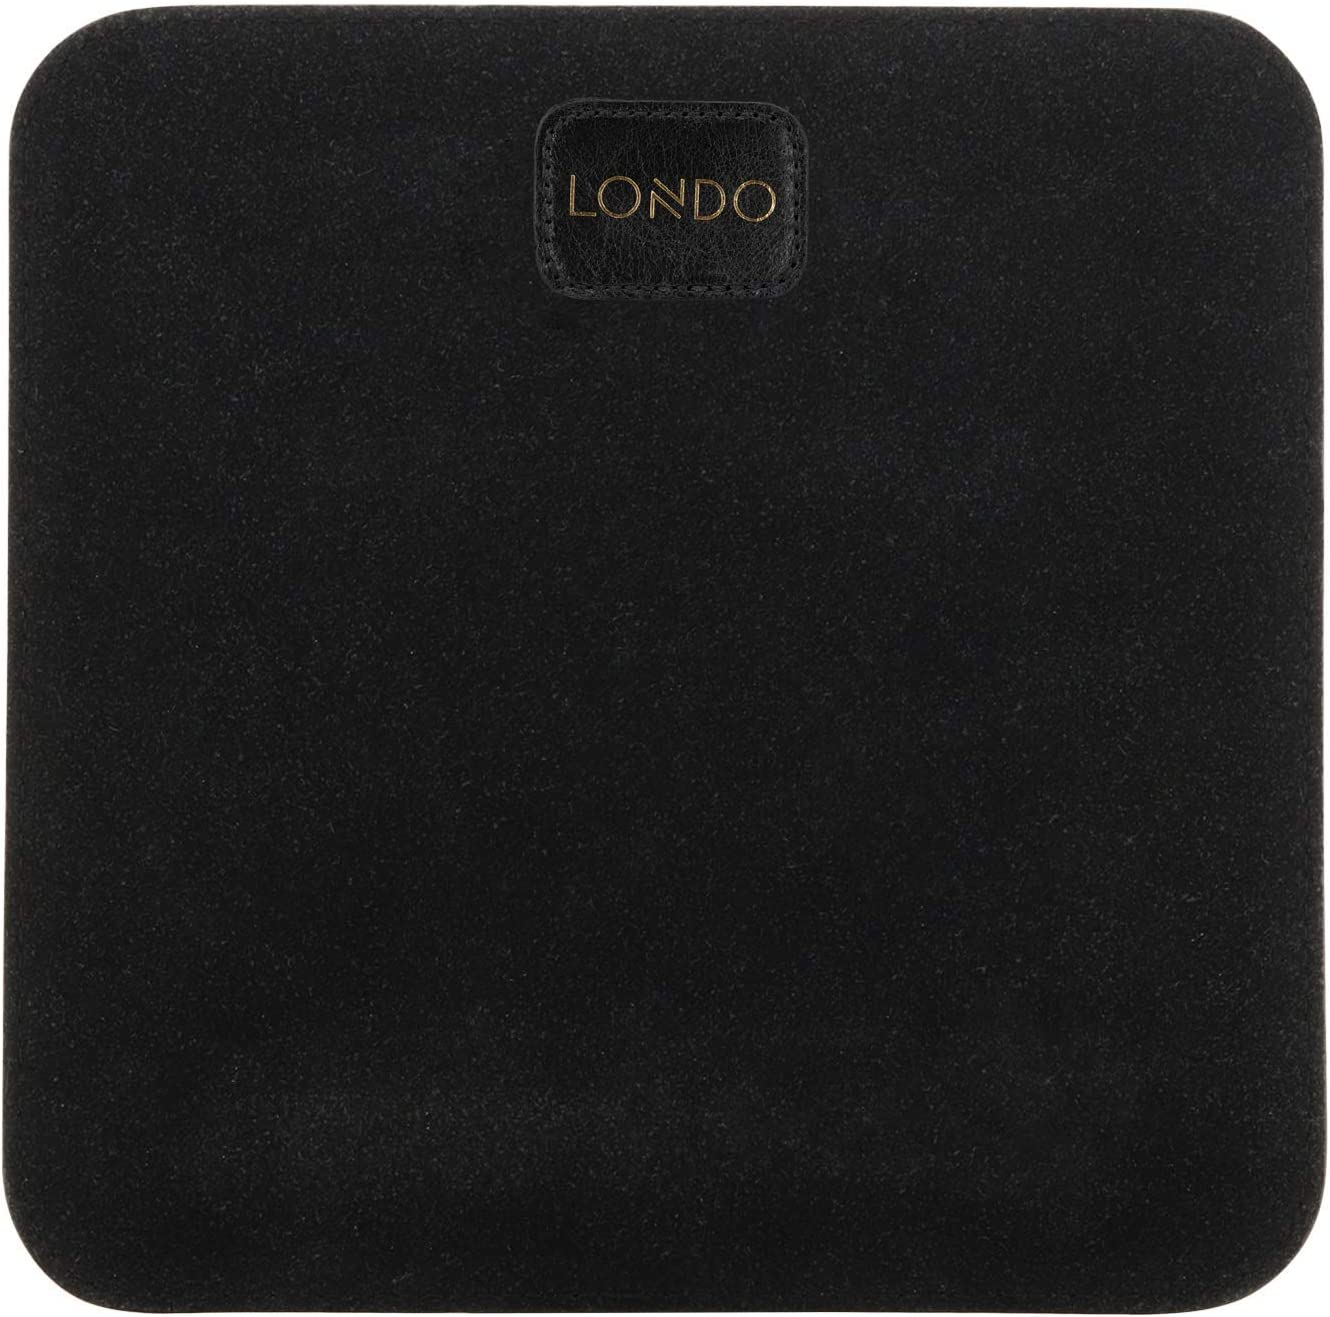 Londo Genuine Leather Mouse pad with Wrist Rest Black